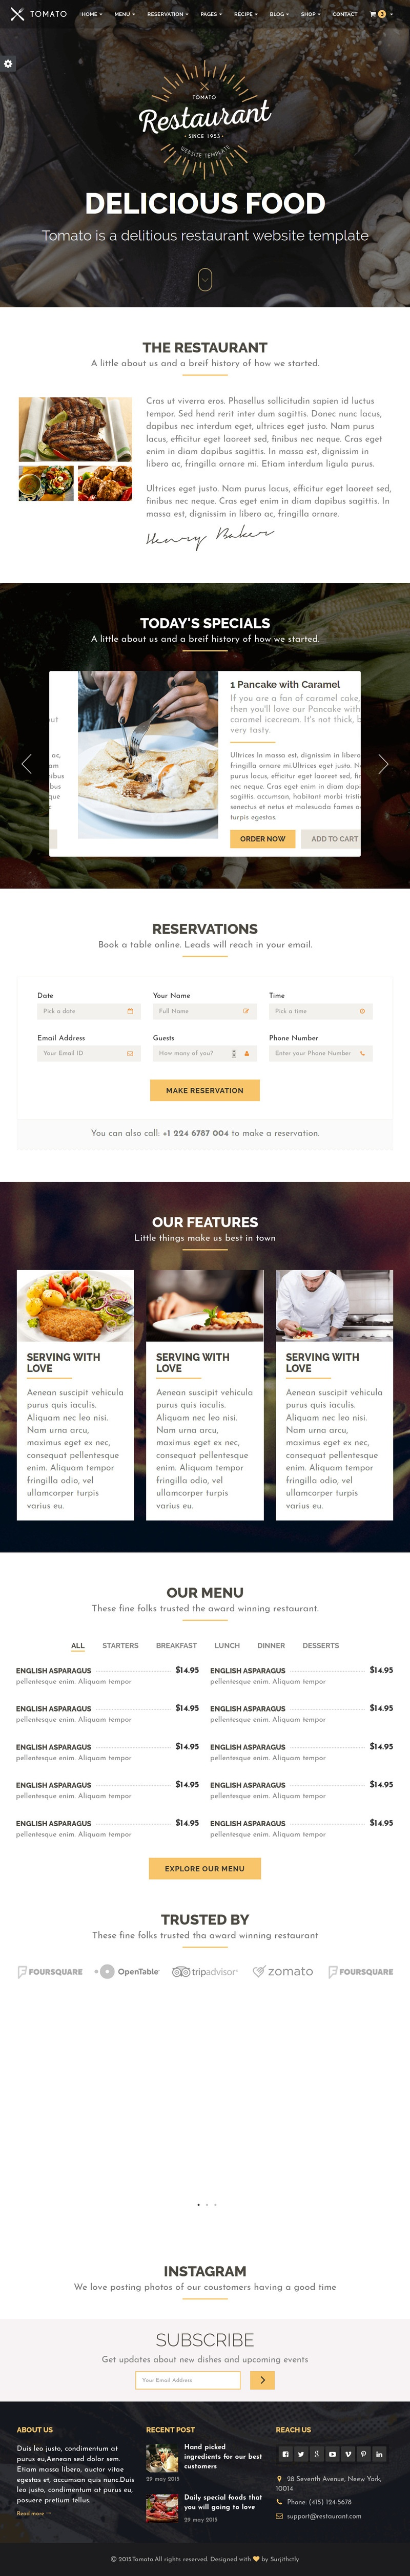 Restaurant Web Design Template by SERP Matrix